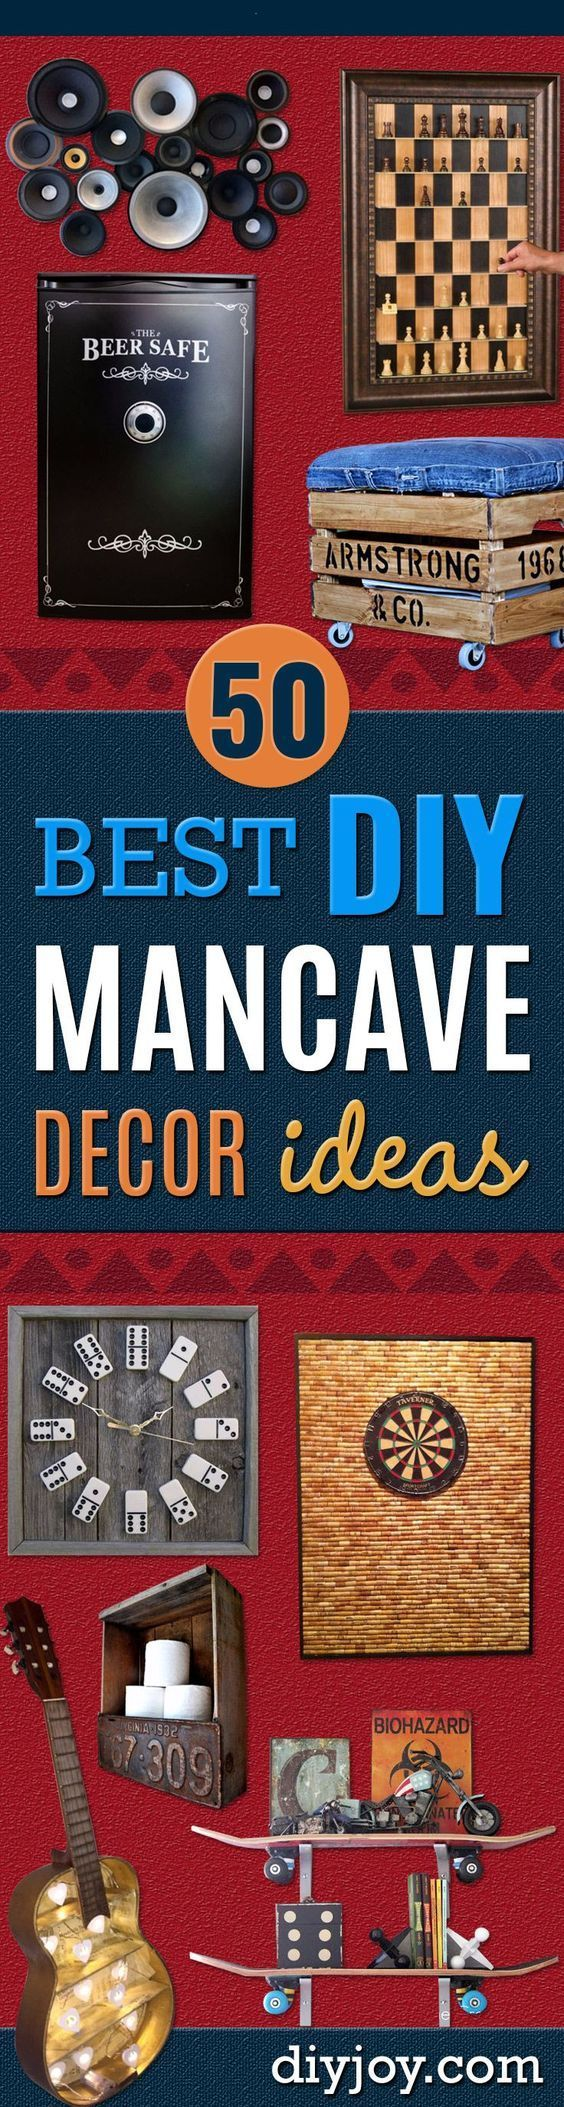 DIY Mancave Decor Ideas - Step by Step Tutorials and Do It Yourself Projects for Your Man Cave - Easy DIY Furniture, Wall Art, Sinks, Coolers, Storage, Shelves, Games, Seating and Home Decor for Your Garage Room - Fun DIY Projects and Crafts for Men http://diyjoy.com/diy-mancave-ideas #easyhomedecor